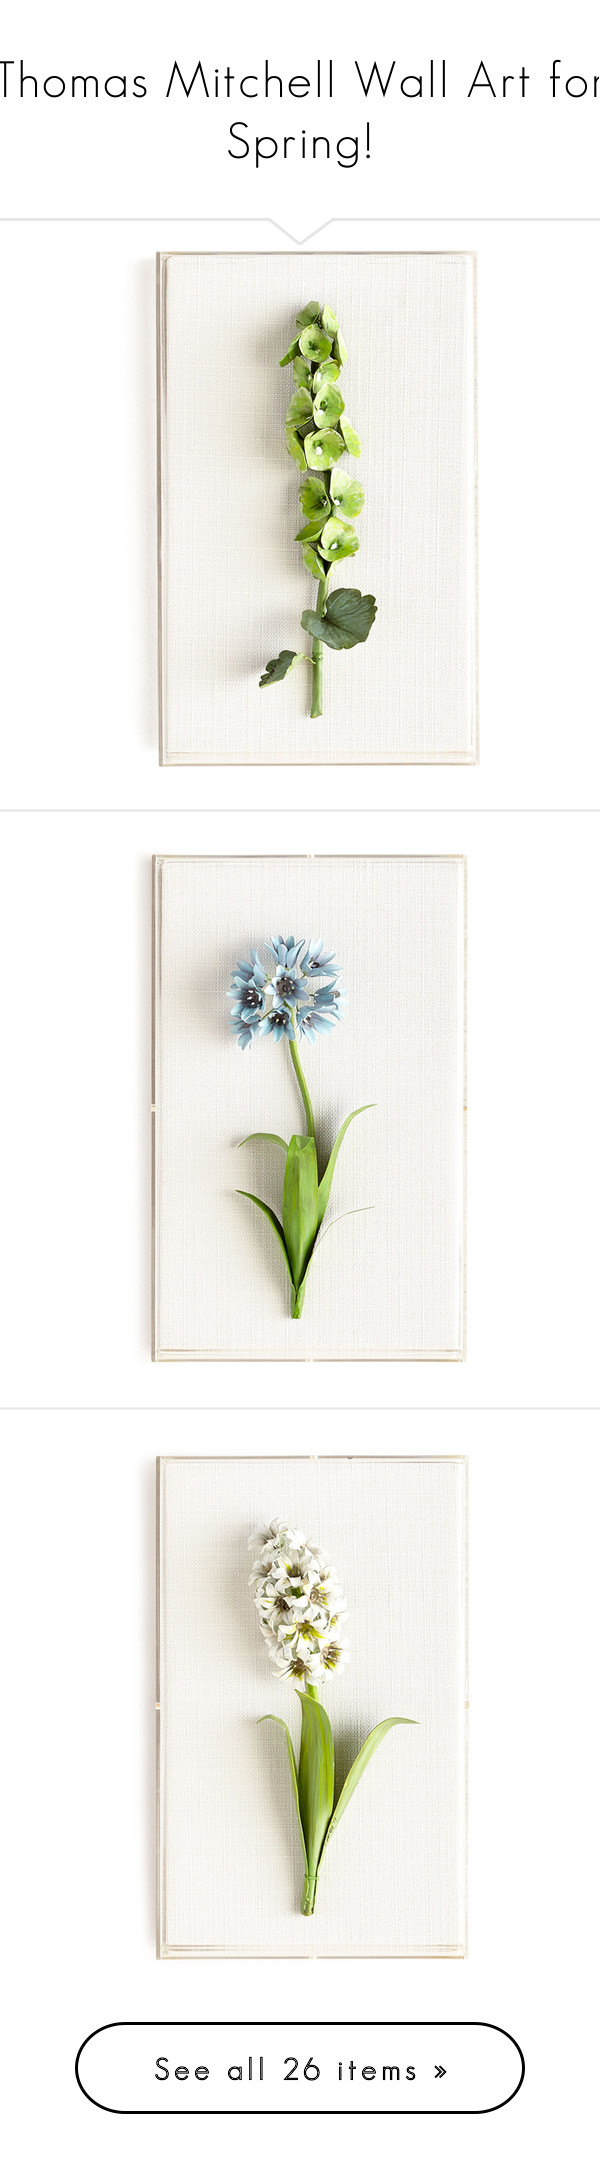 """""""Thomas Mitchell Wall Art for Spring!"""" by kearalachelle ❤ liked on Polyvore featuring home, home decor, wall art, fillers, green, flower wall art, flower home decor, handmade home decor, inspirational wall art and framed wall art"""